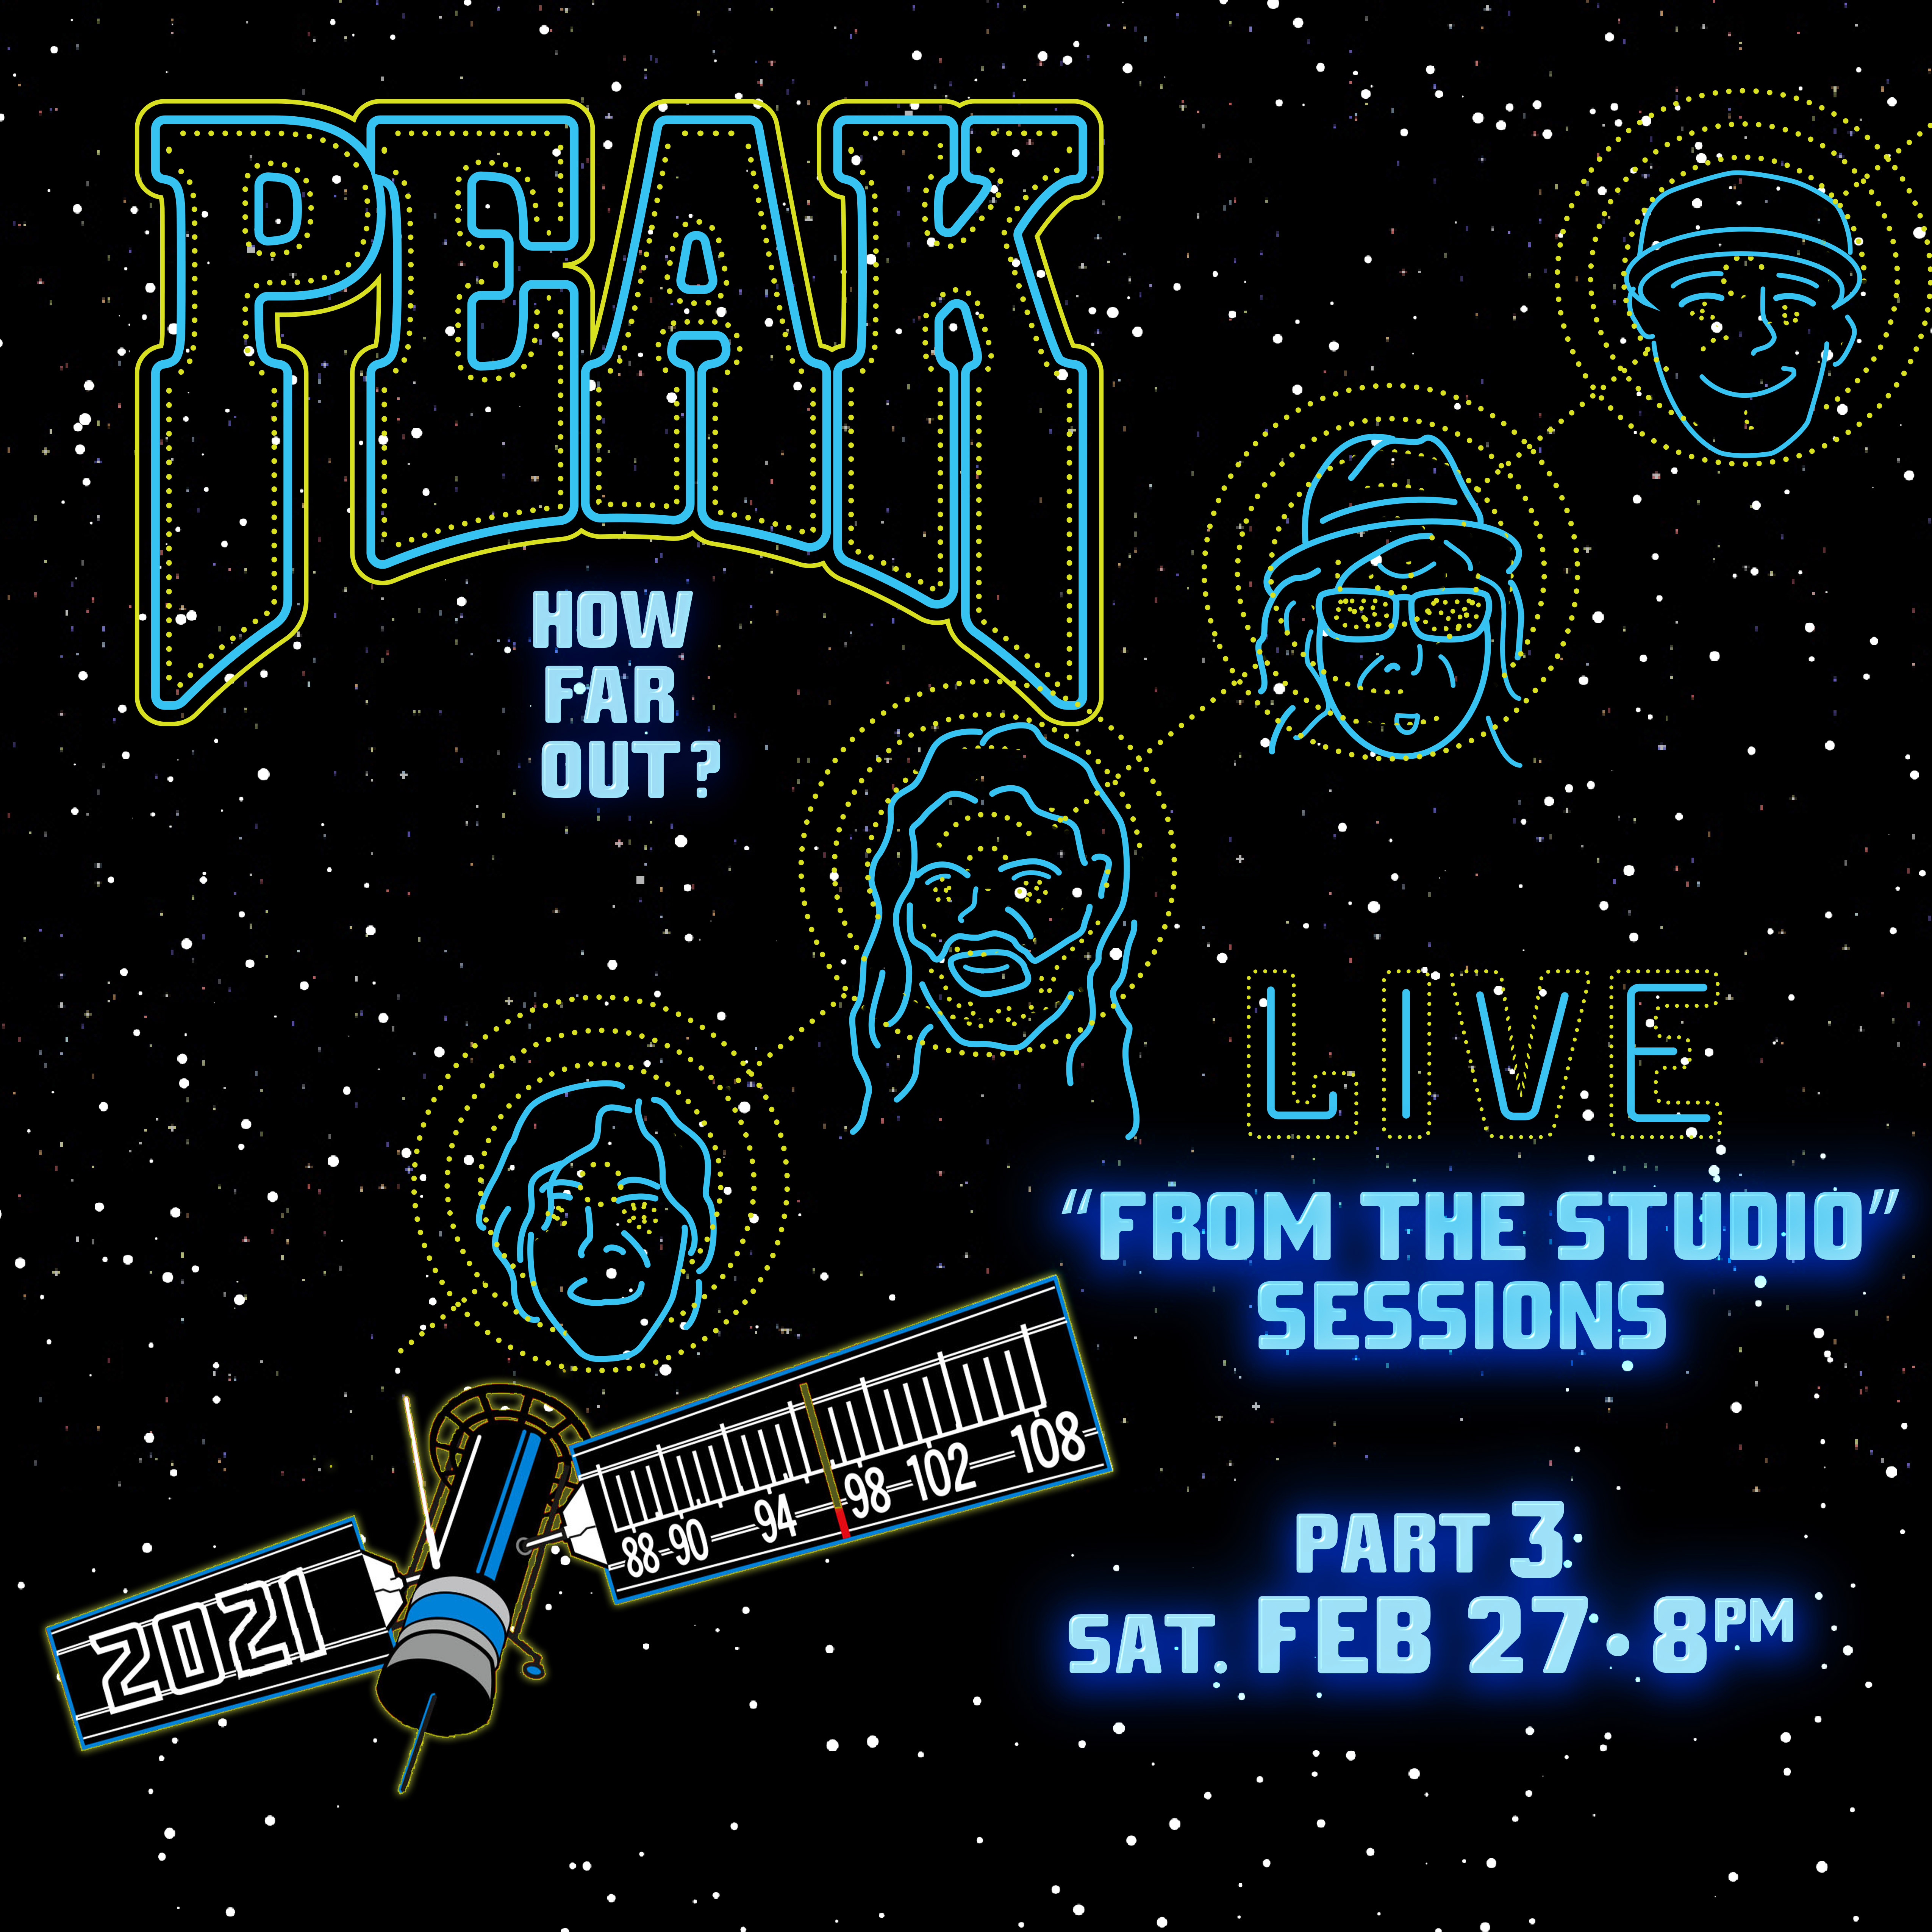 PEAK announces Live From The Studio Sessions PART 3